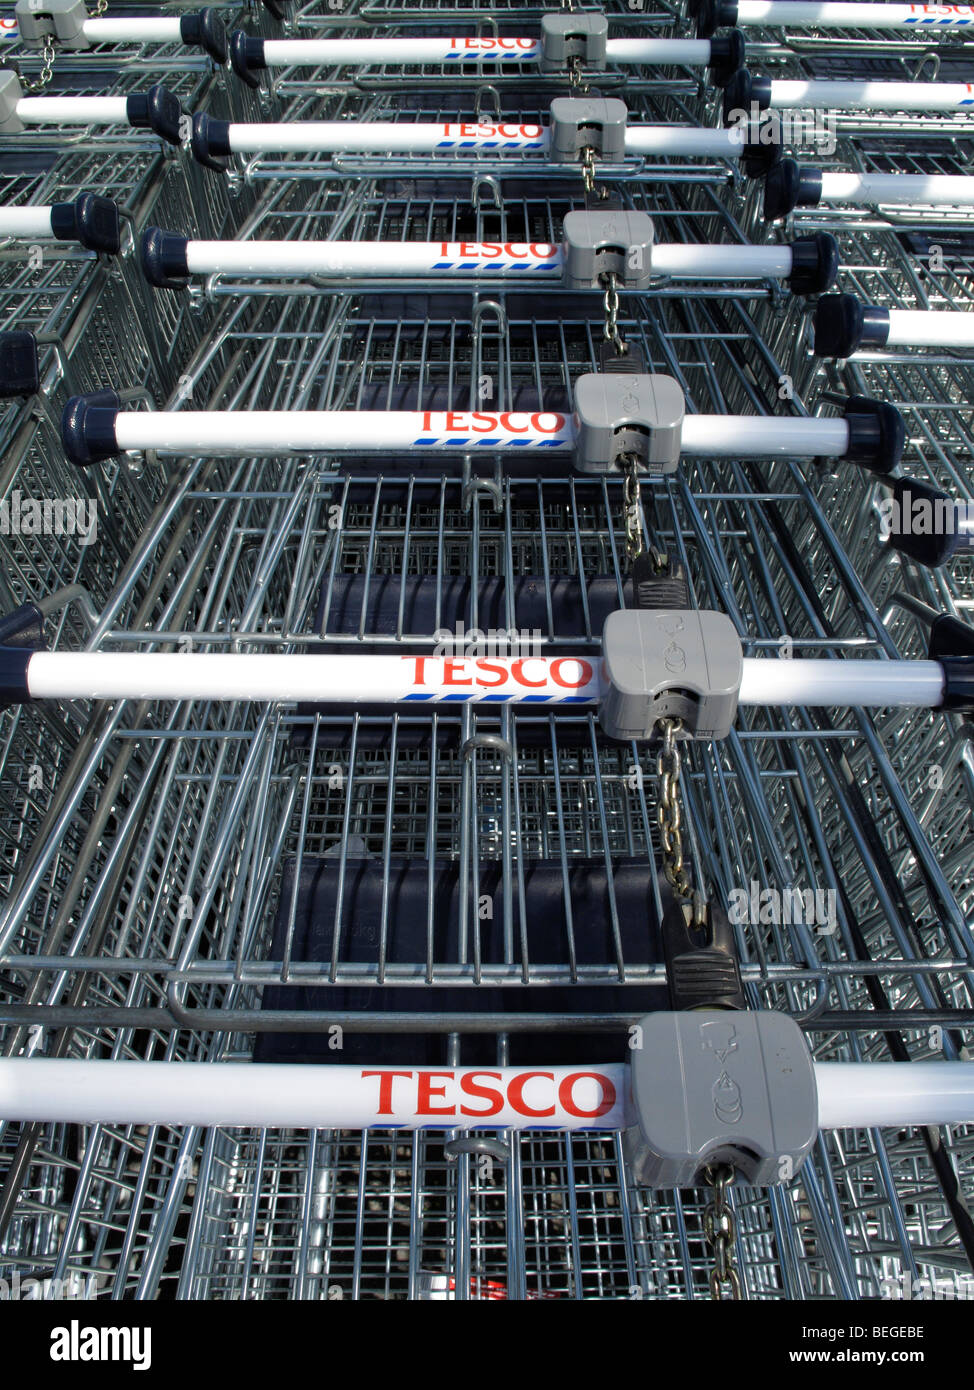 Shopping trolleys or carts for a Tesco supermarket - Stock Image